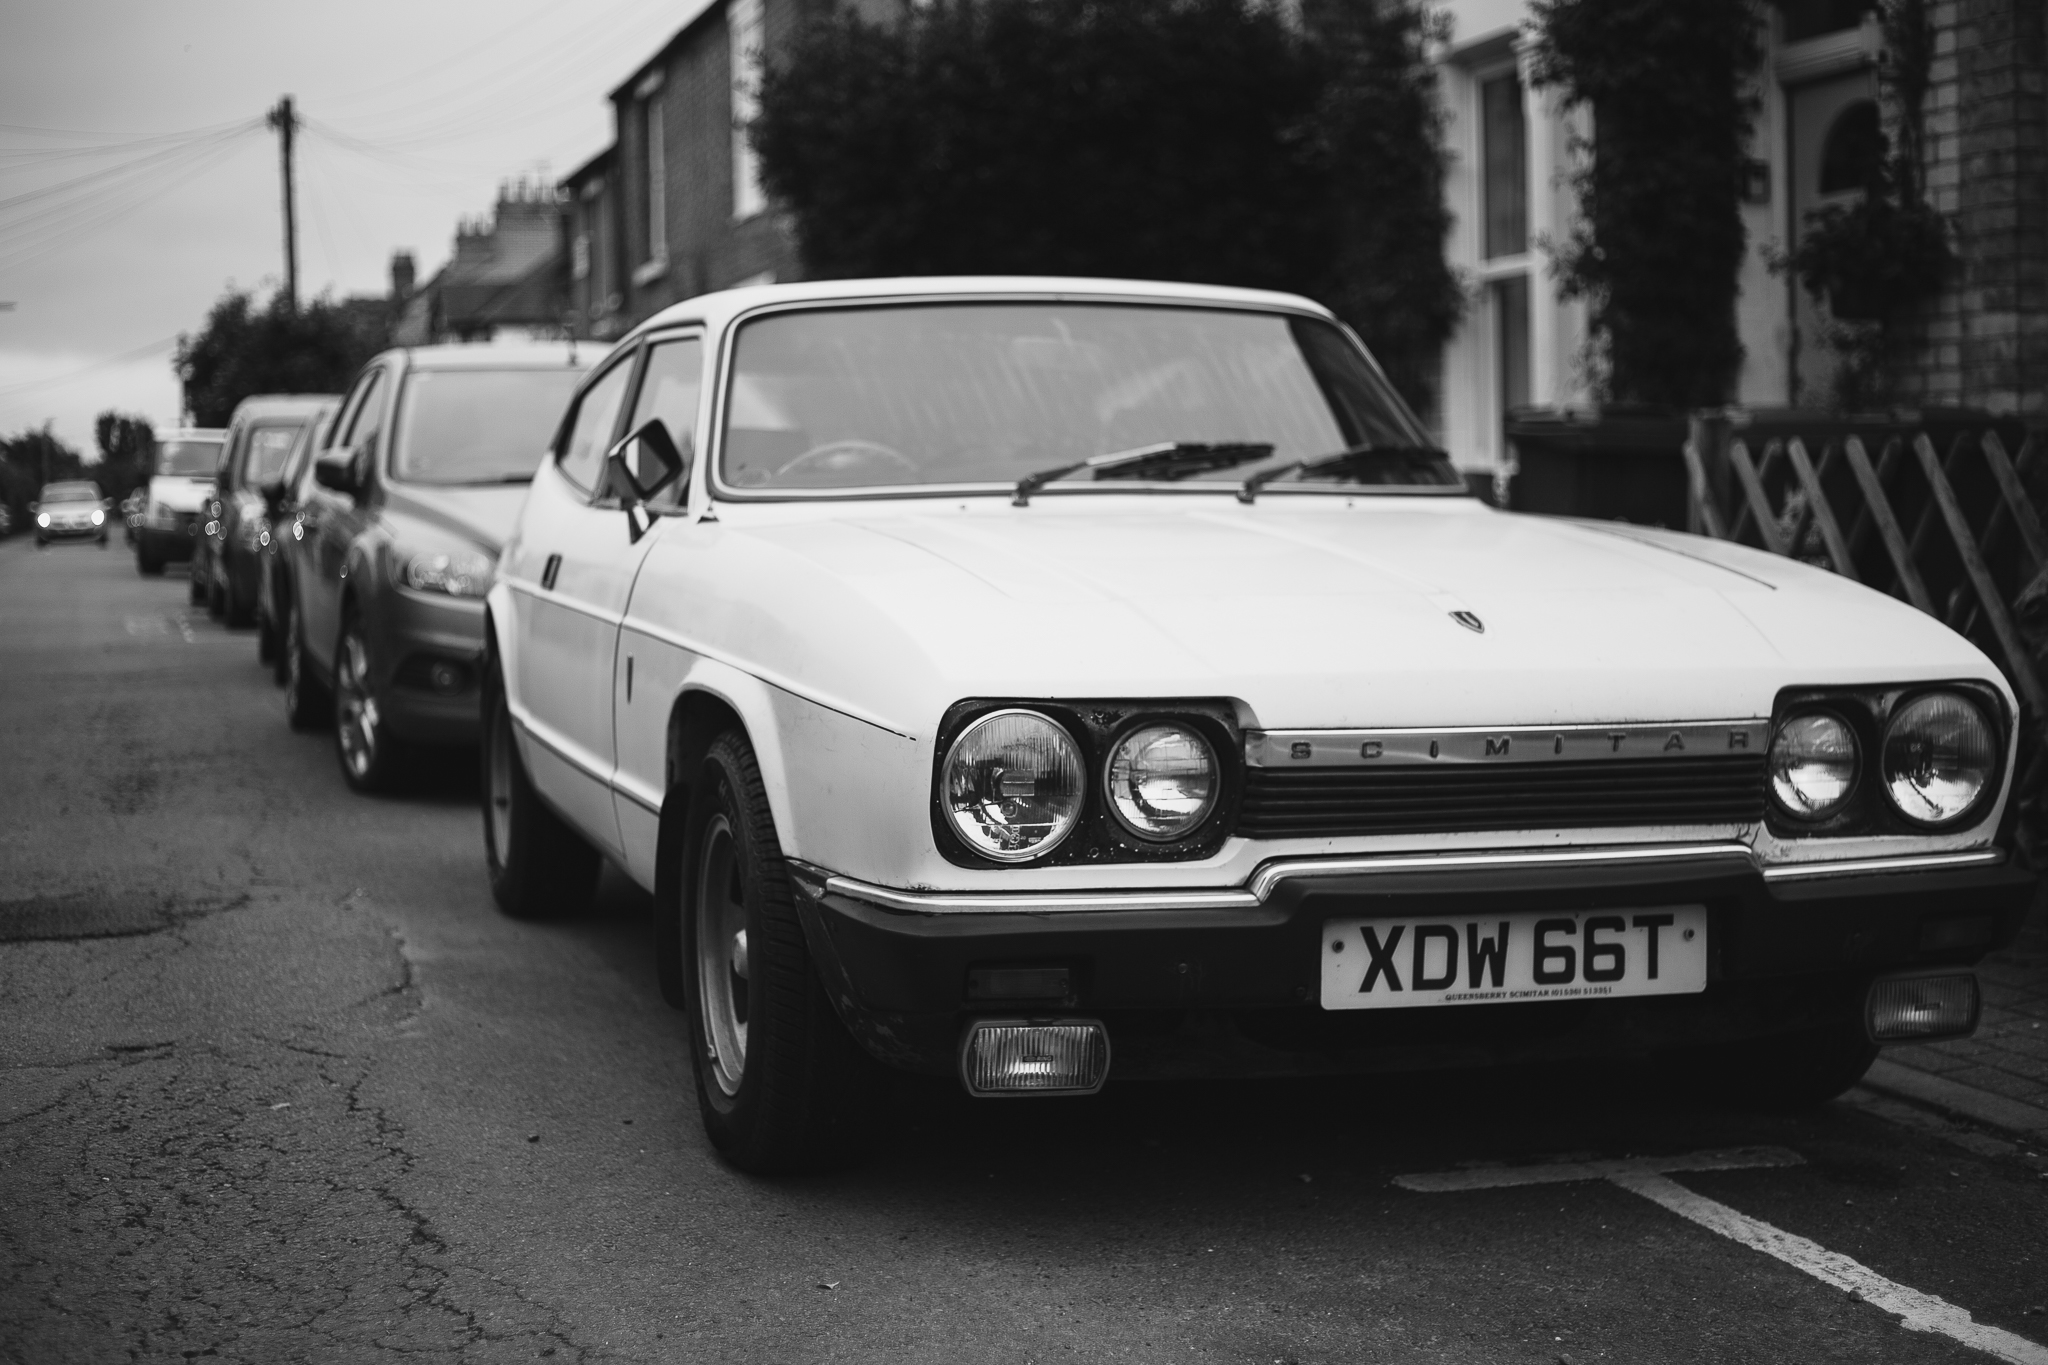 The Reliant Scimitar looks like a small, shooting-brake cousin of the Ford Capri